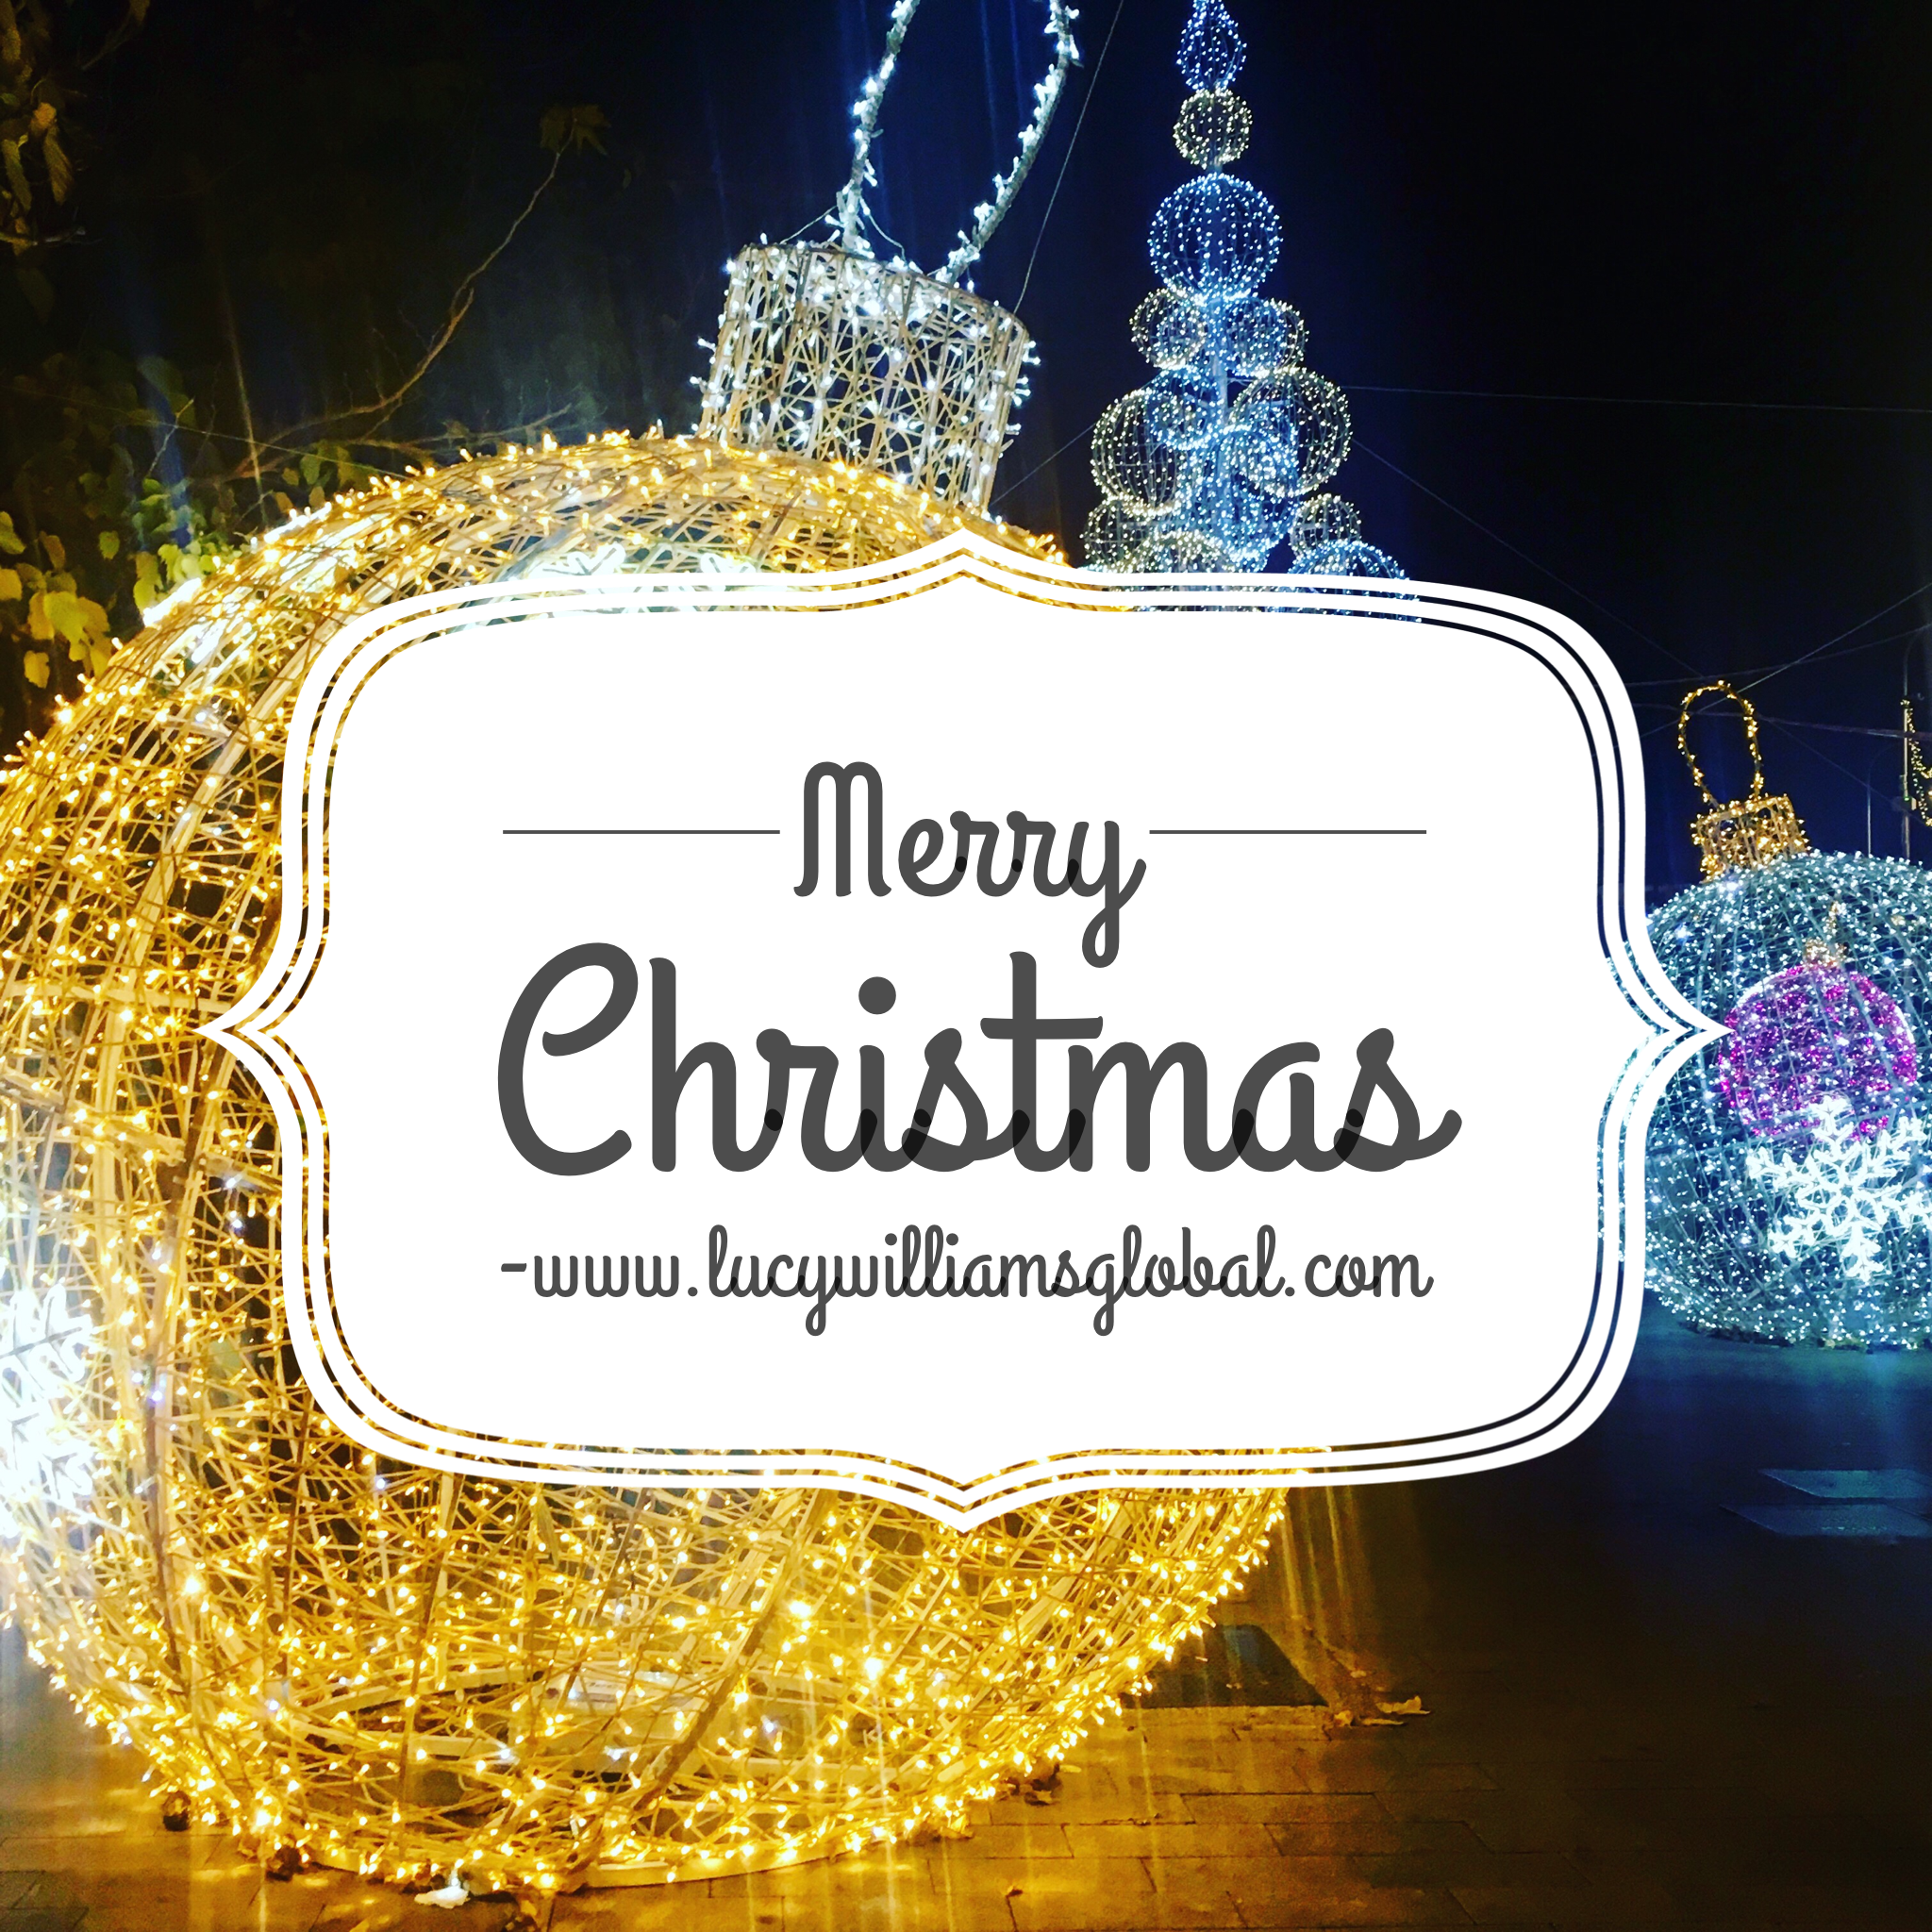 Merry Christmas - Lucy WIlliams Global